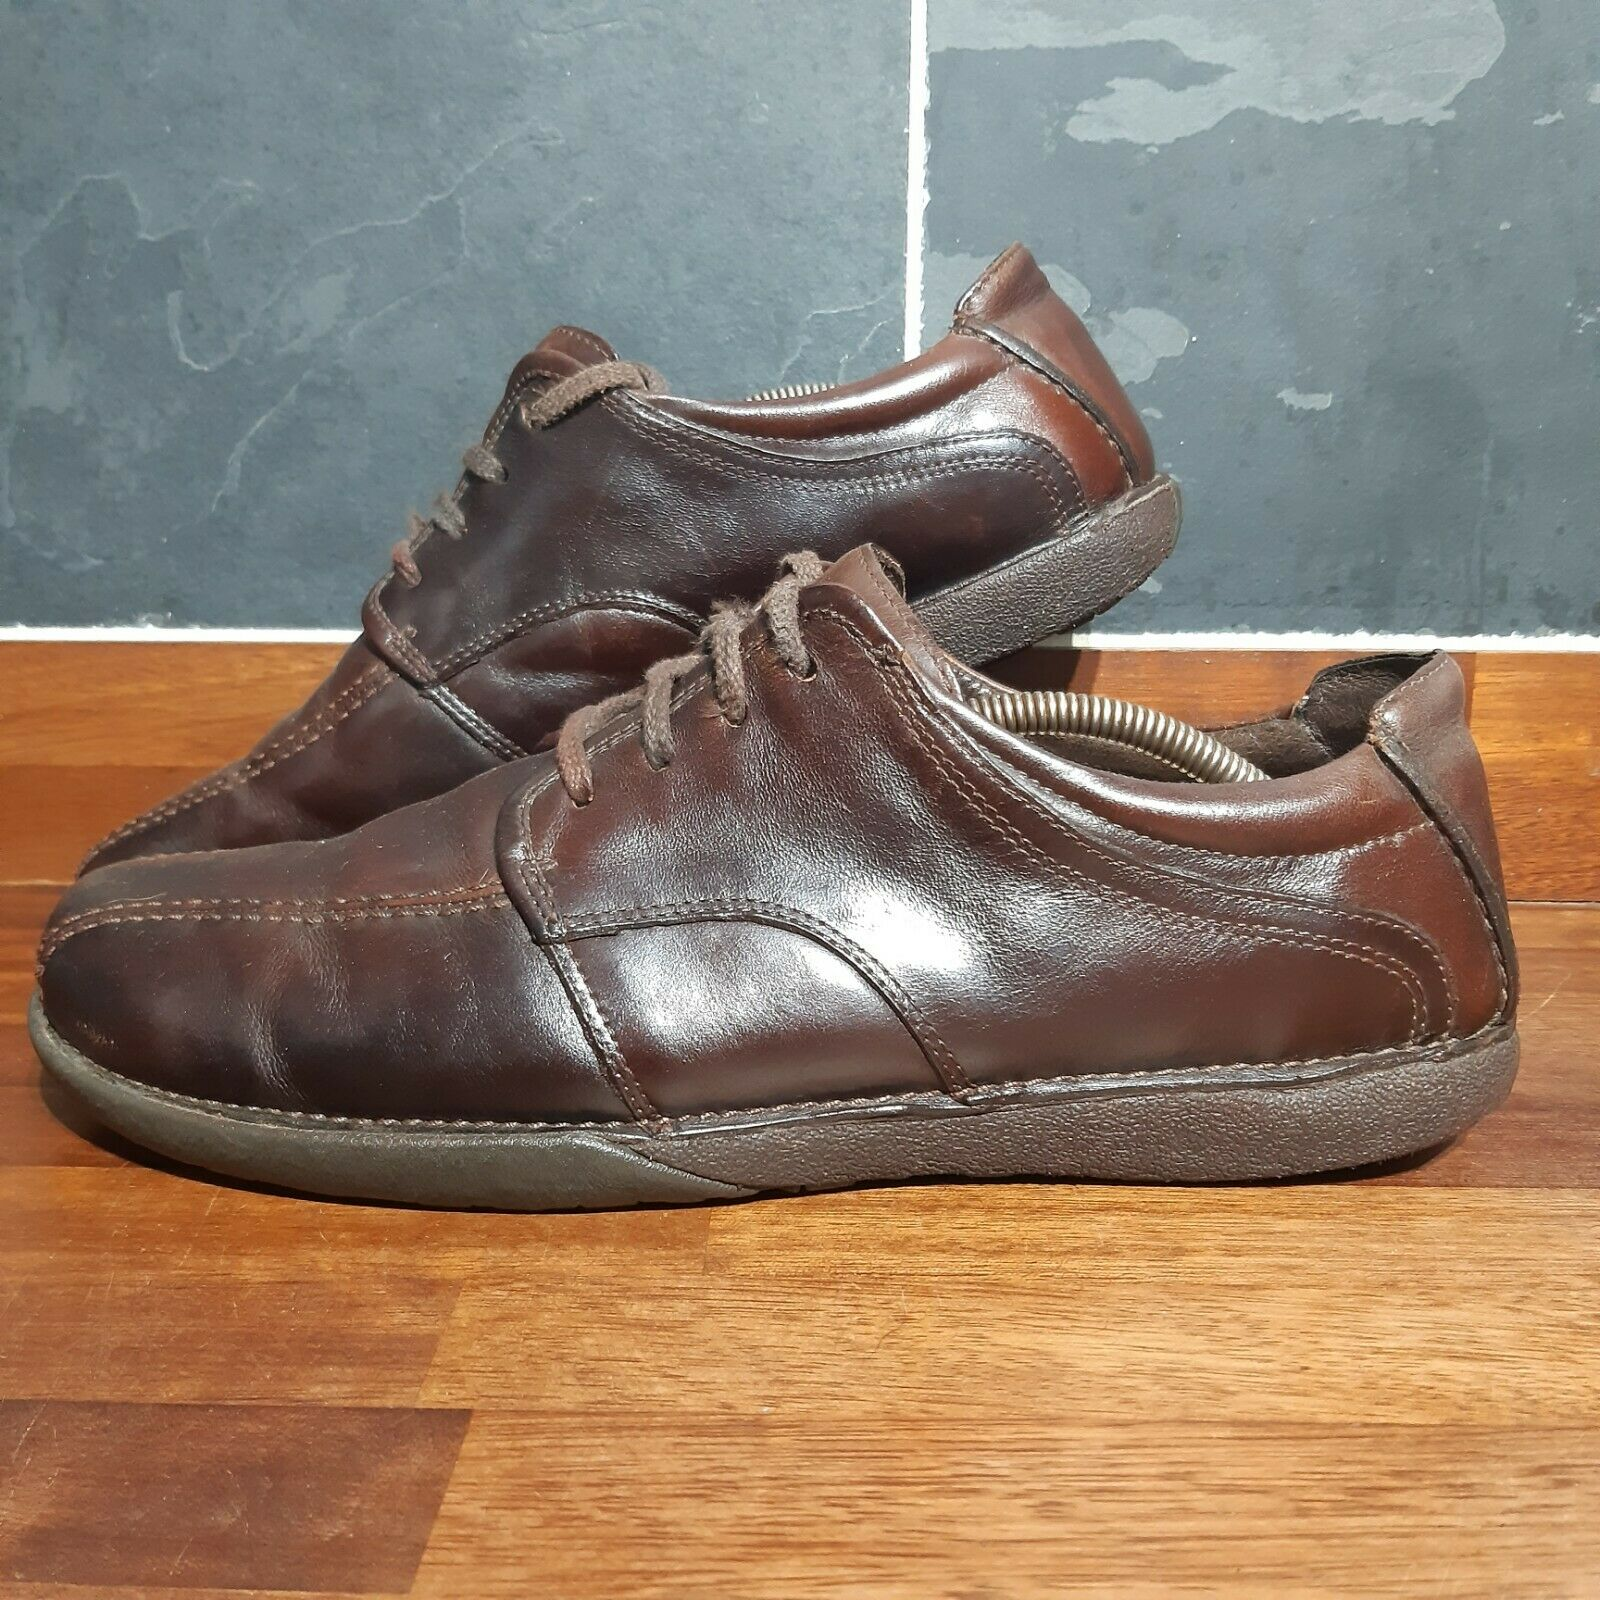 Mens Clarks Brown Leather Shoes - UK Size 11 G - Great Condition